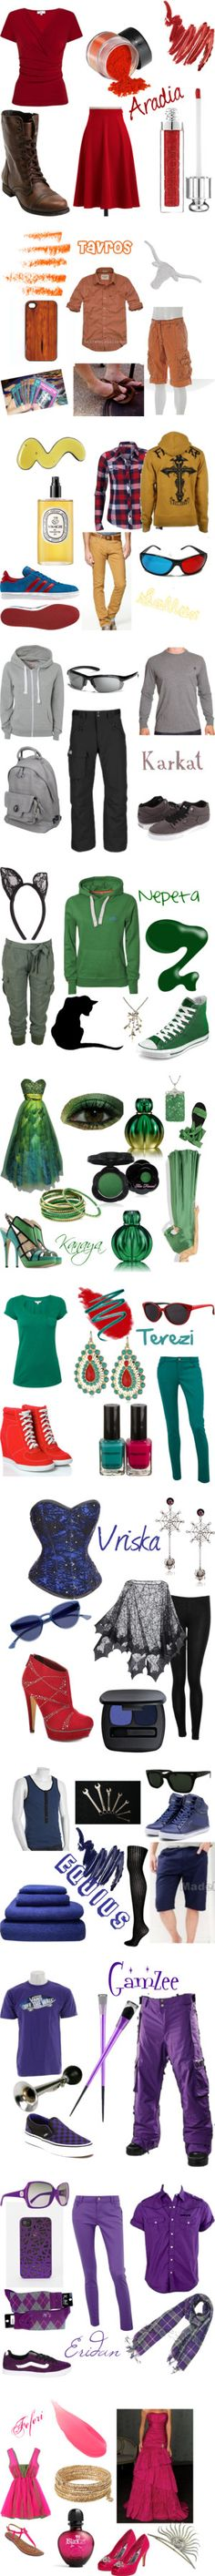 """FashionStuck"" by jaefashion on Polyvore           Homestuck inspired outfits in order of blood hierchy"